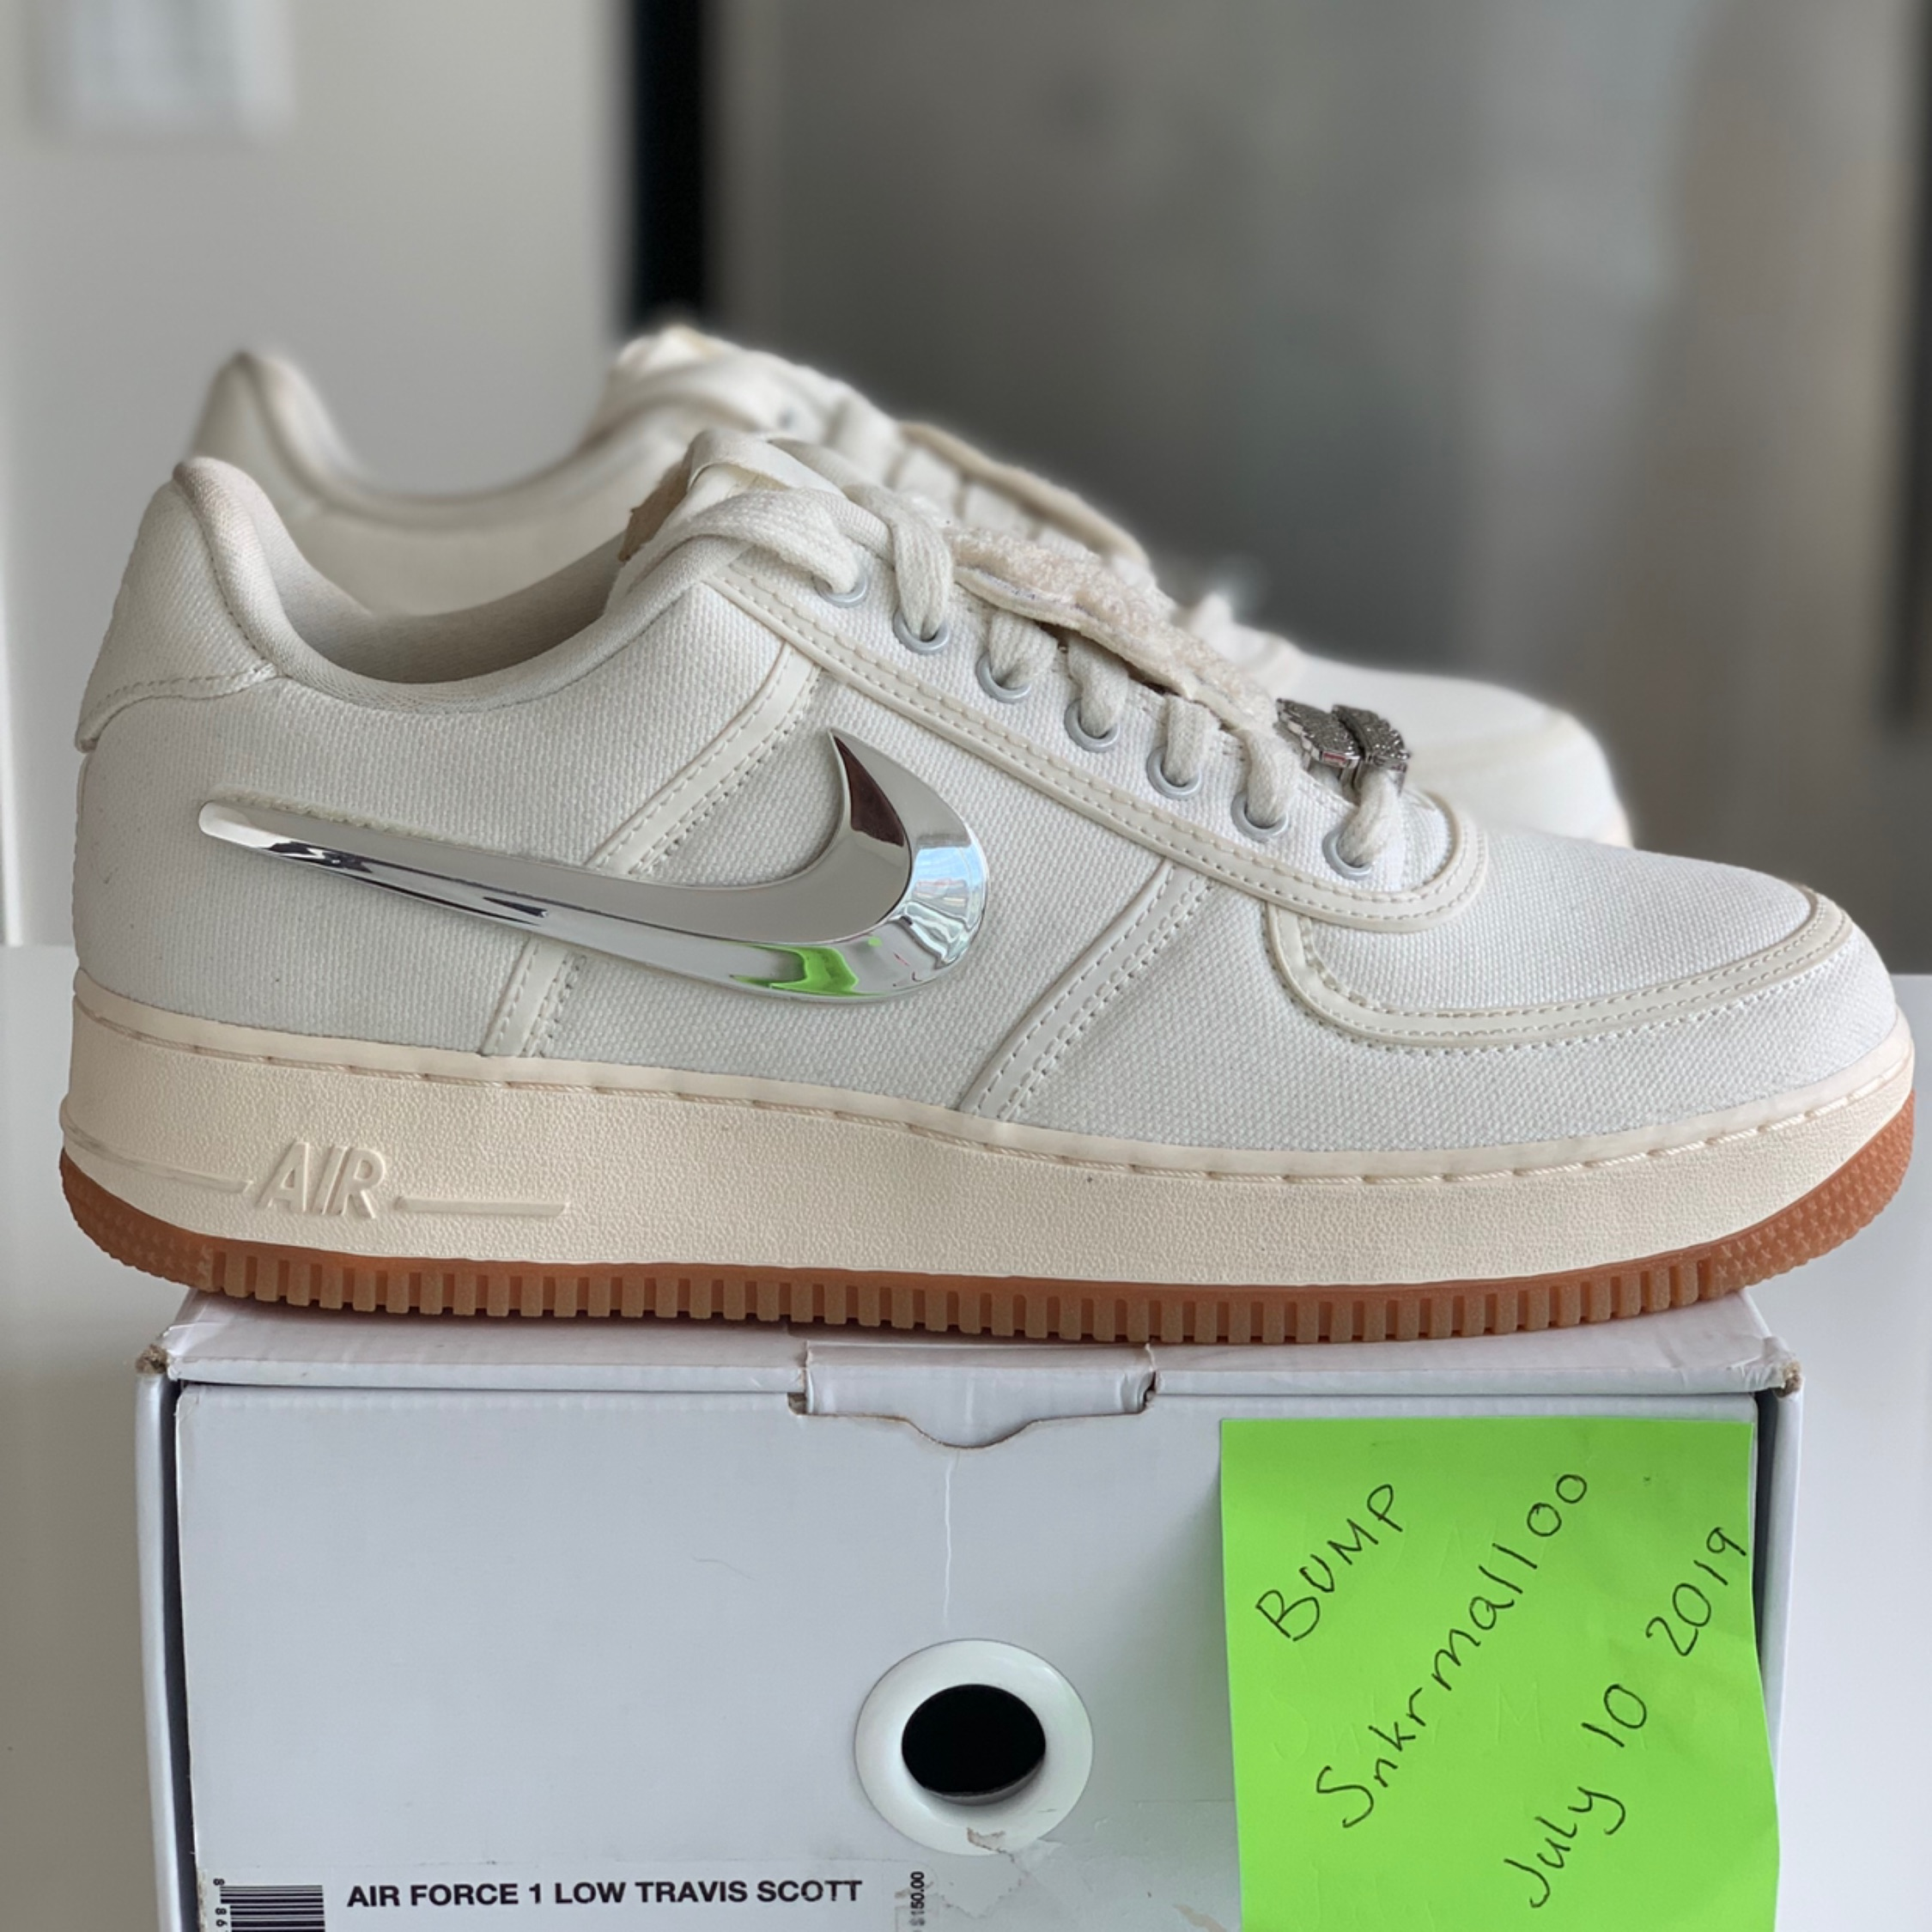 Air Force 1 Low Travis Scott Sail AQ4211 101